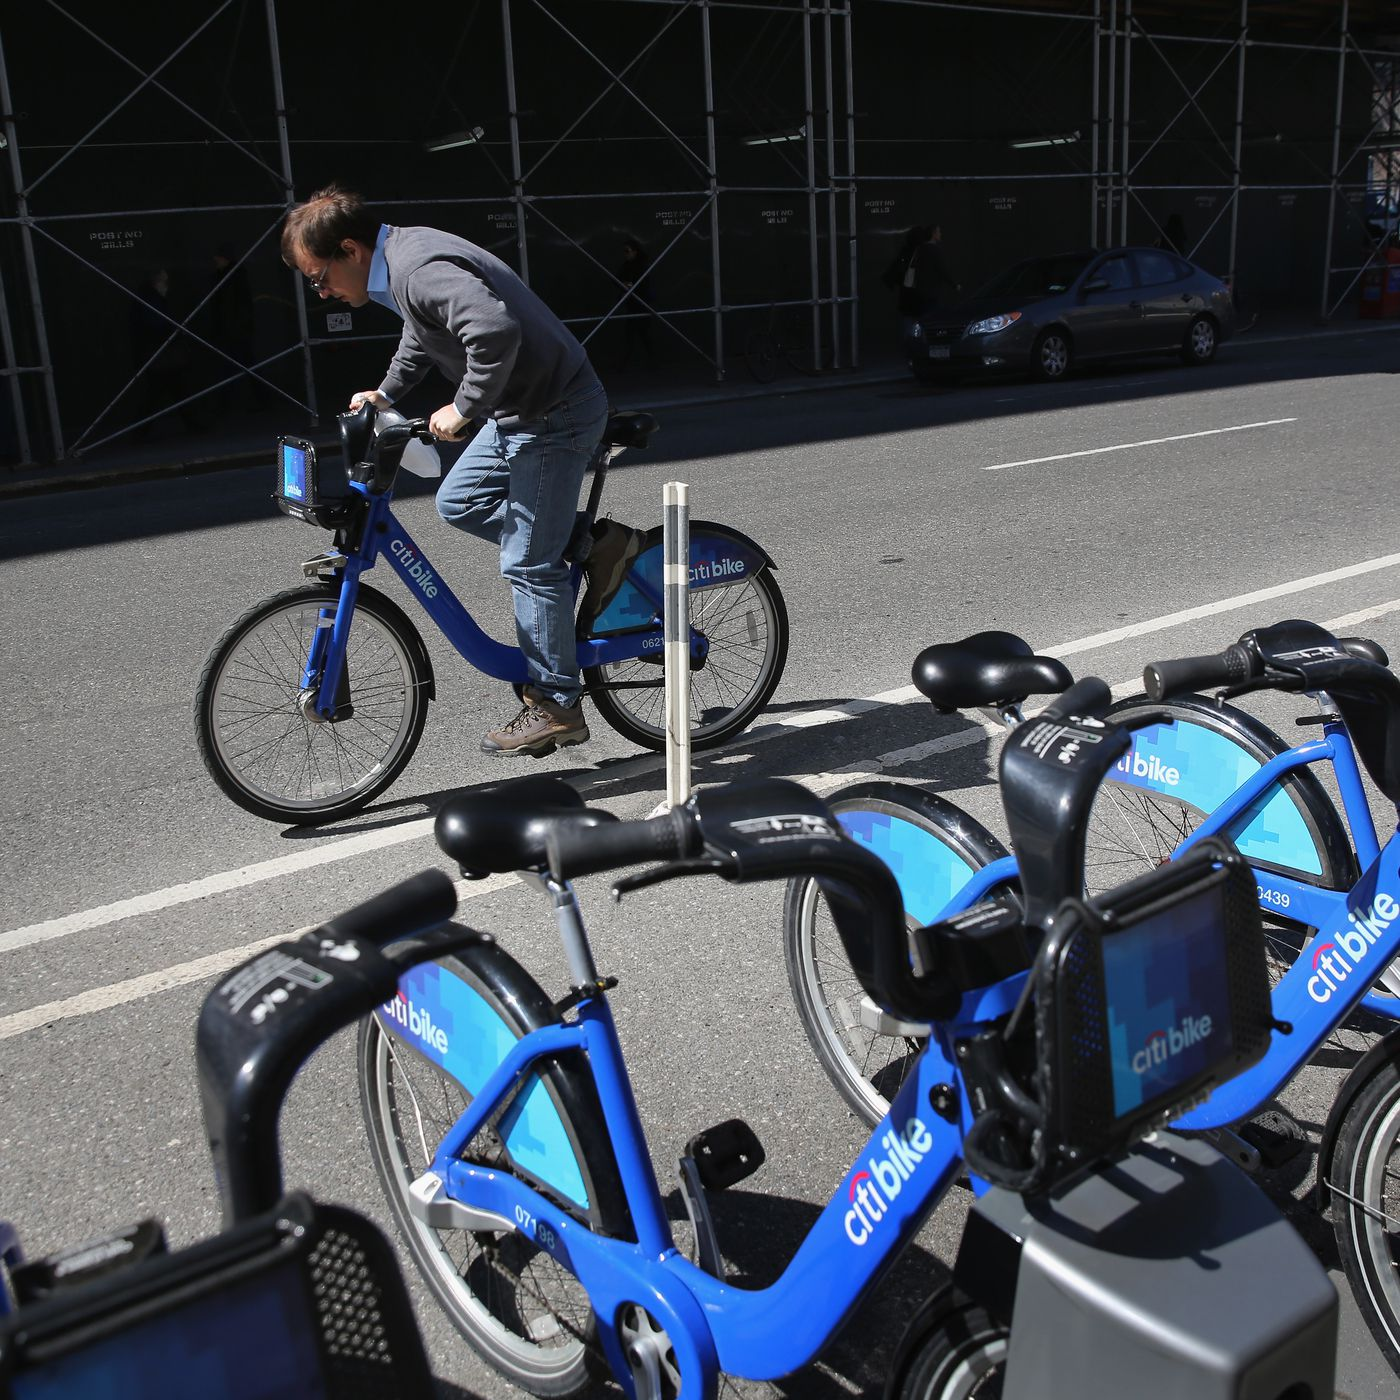 Citi Bikes can now be rented through the Lyft app - The Verge